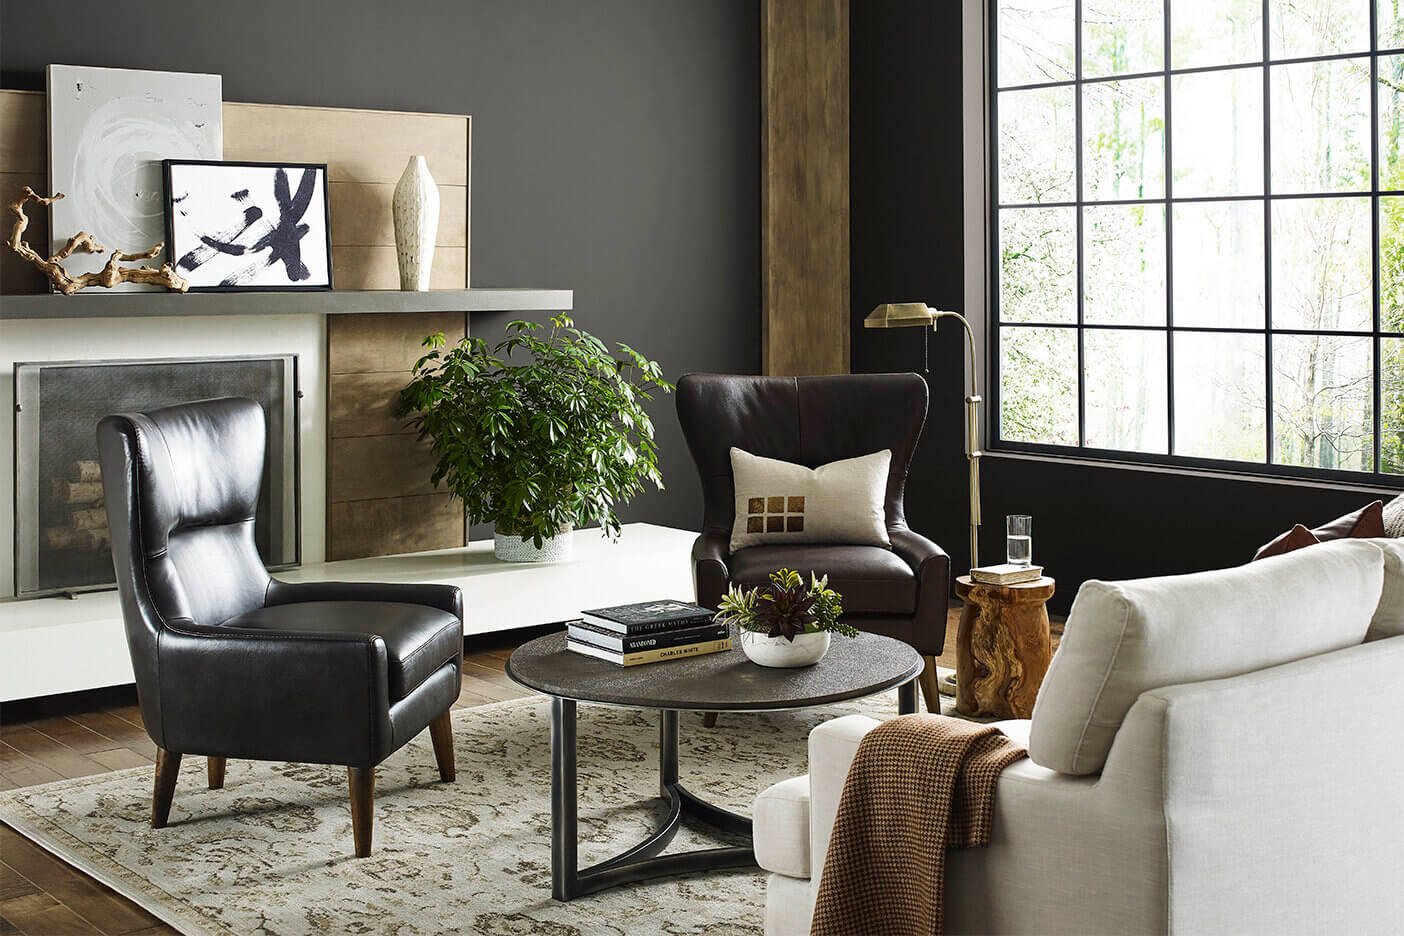 home-color-trends-2021-sherwin-williams-color-of-the-year-urbane-bronze-nordroom